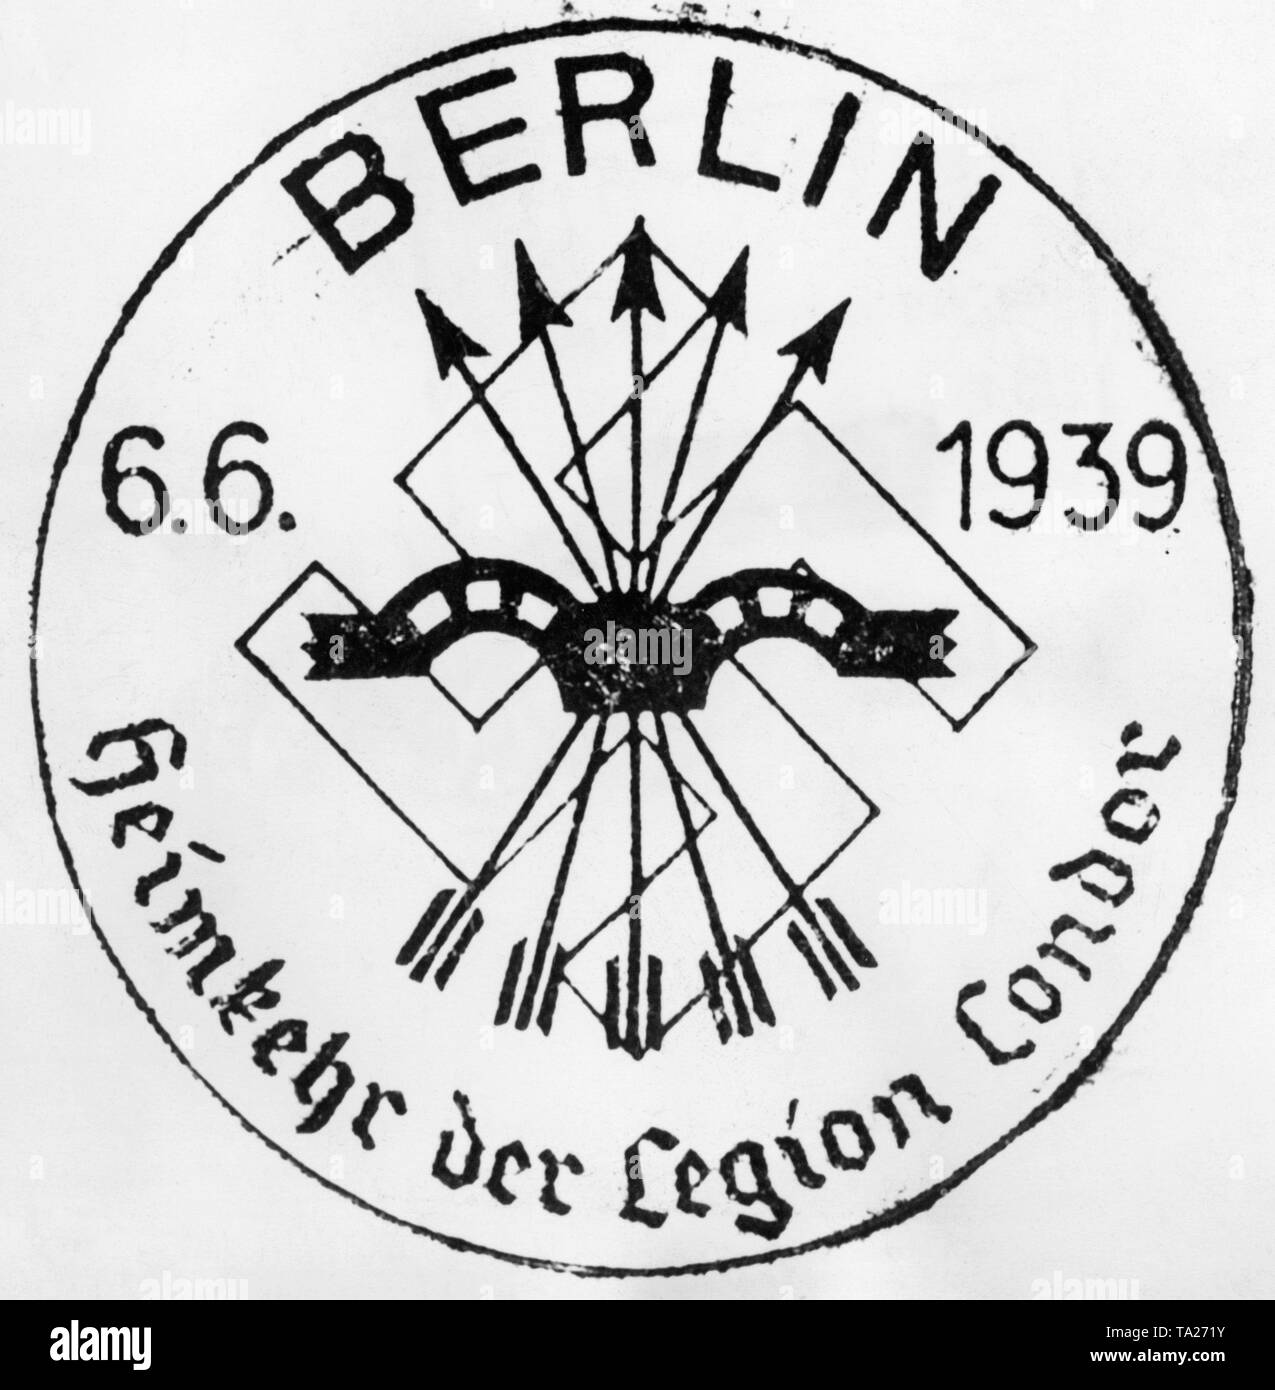 Photo of a postmark of the Reichspost on the occasion of the return of the Condor Legion from the Spanish Civil War on the 6th of June, 1939. In the center there is the symbol of the Fascist Party of Spain, the Falange (arrows and yoke), and the swastika is pictured behind it. - Stock Image